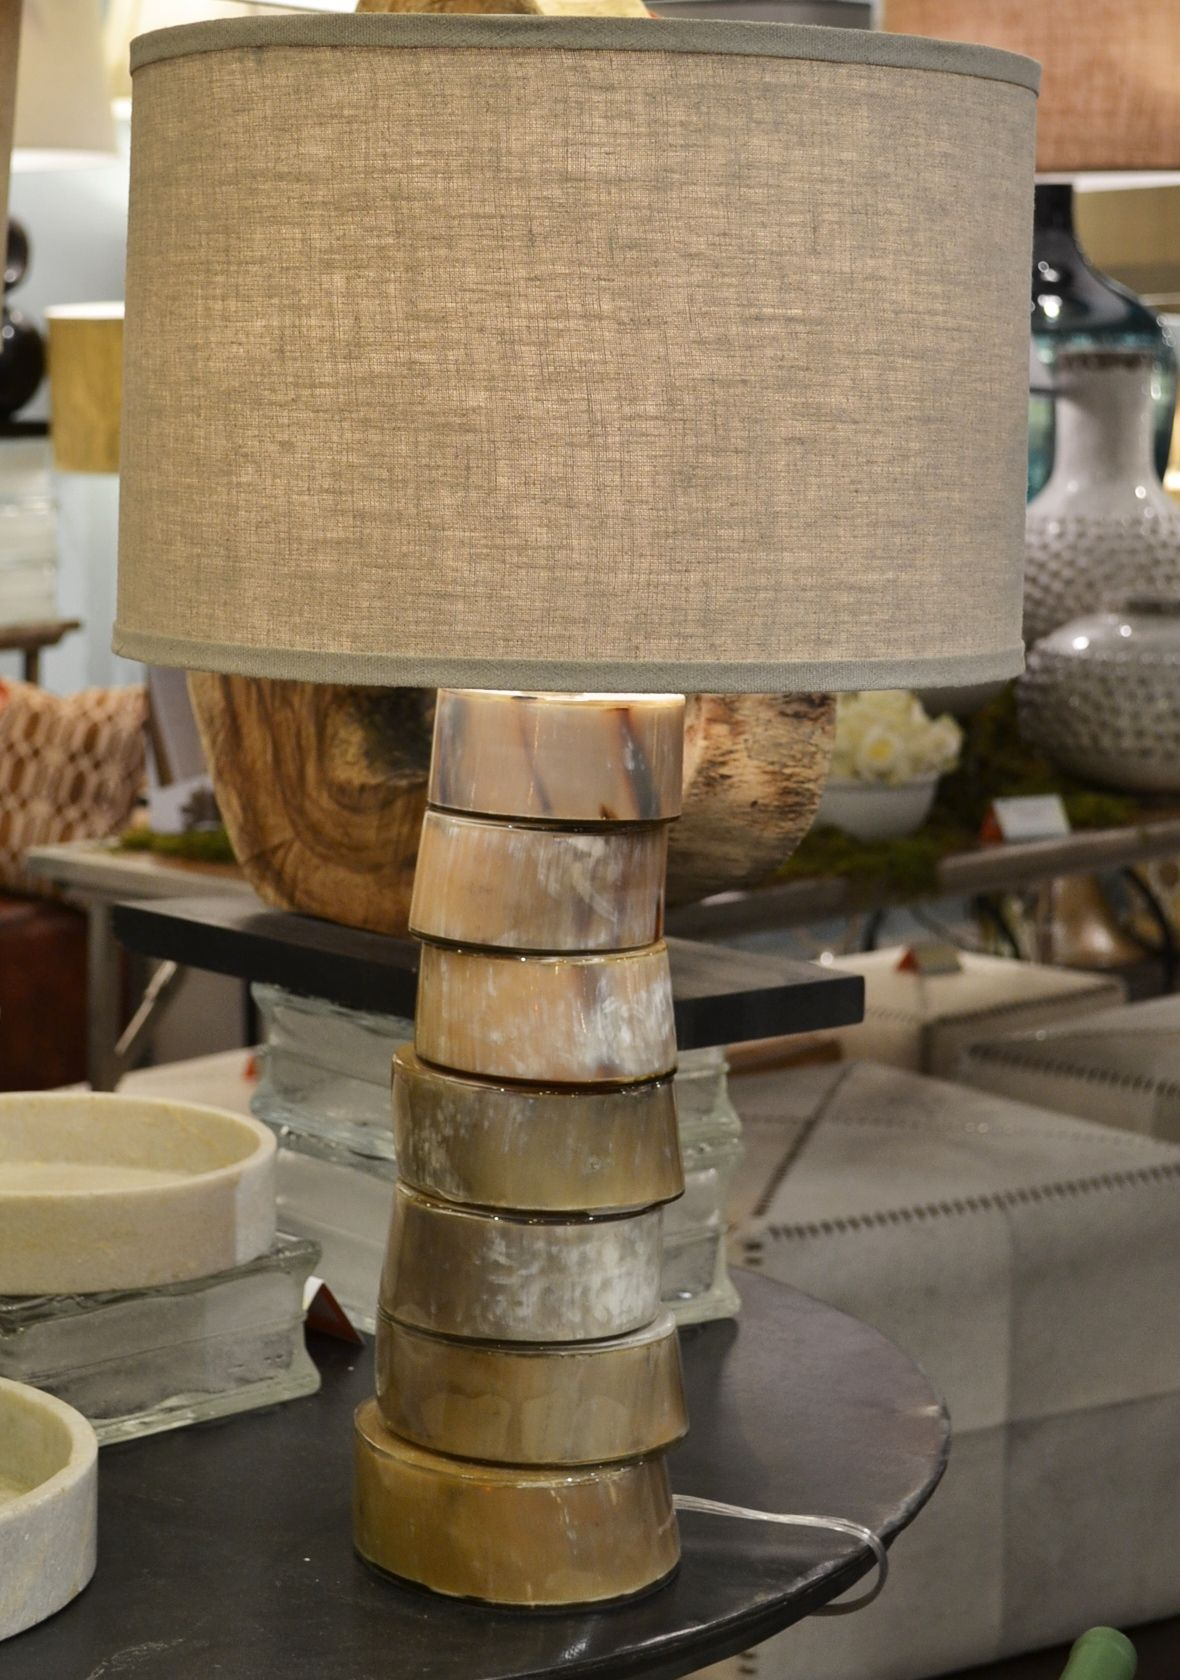 A stacked horn buffalo horn table lamp from jamie young so much a stacked horn buffalo horn table lamp from jamie young so much character and so versatile it is at home in any style space ihfc interhall 609 hpmkt mozeypictures Image collections